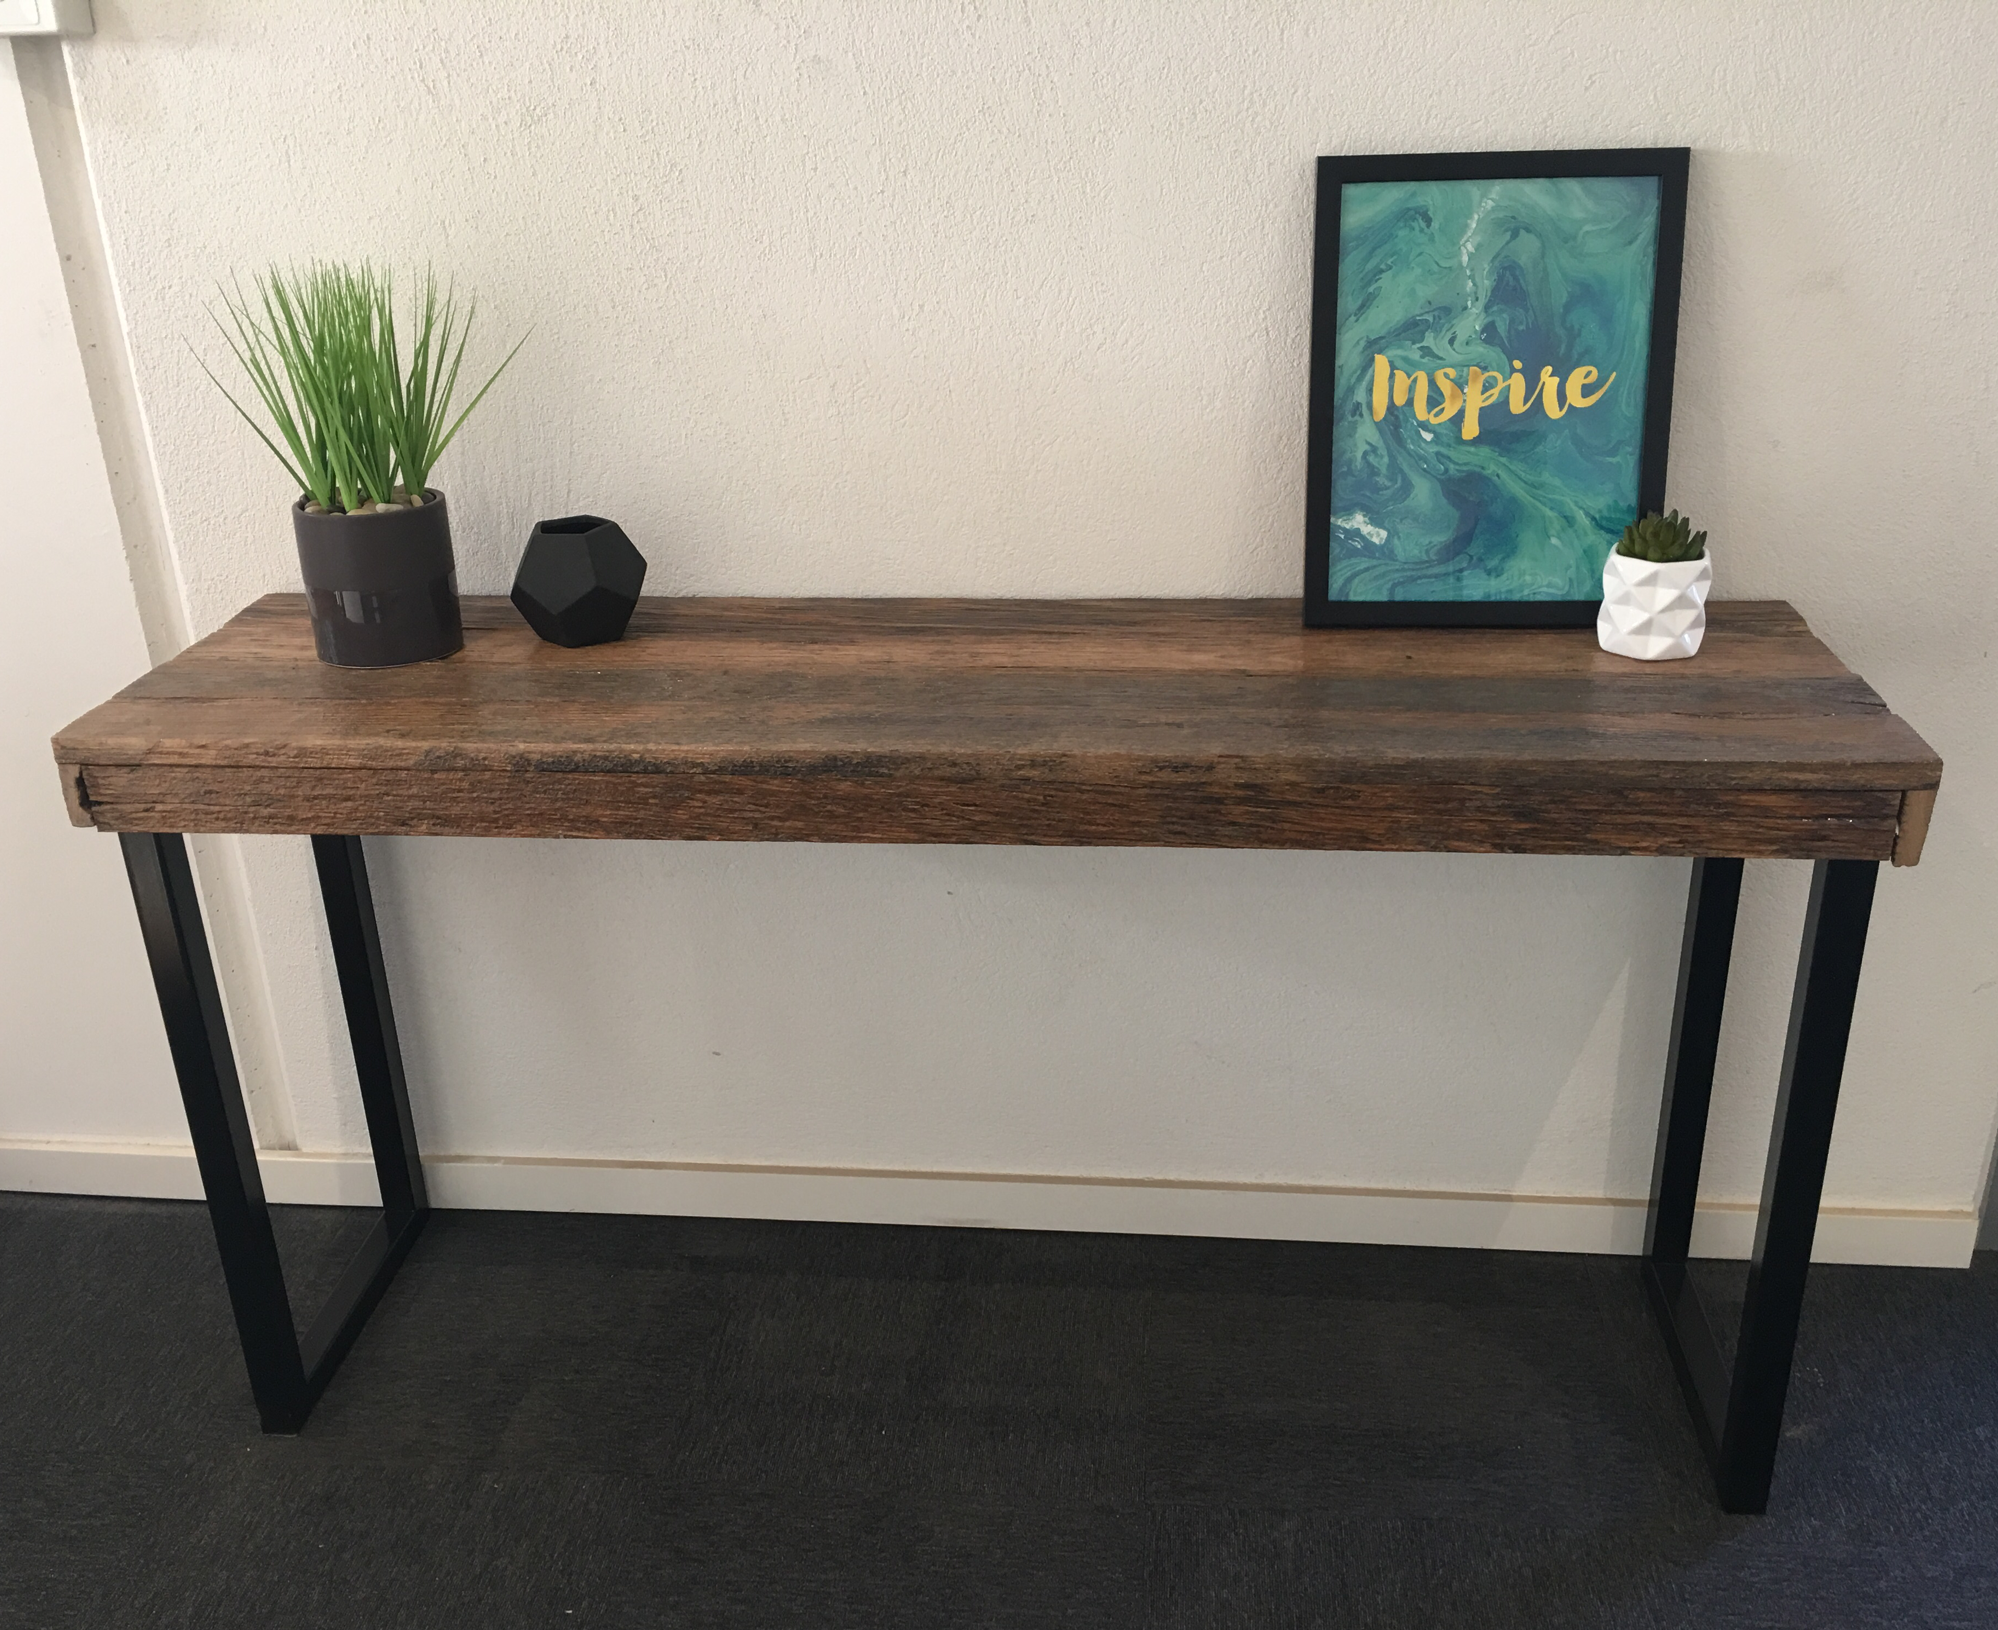 Recycled timber palings industrial hall table with black metal